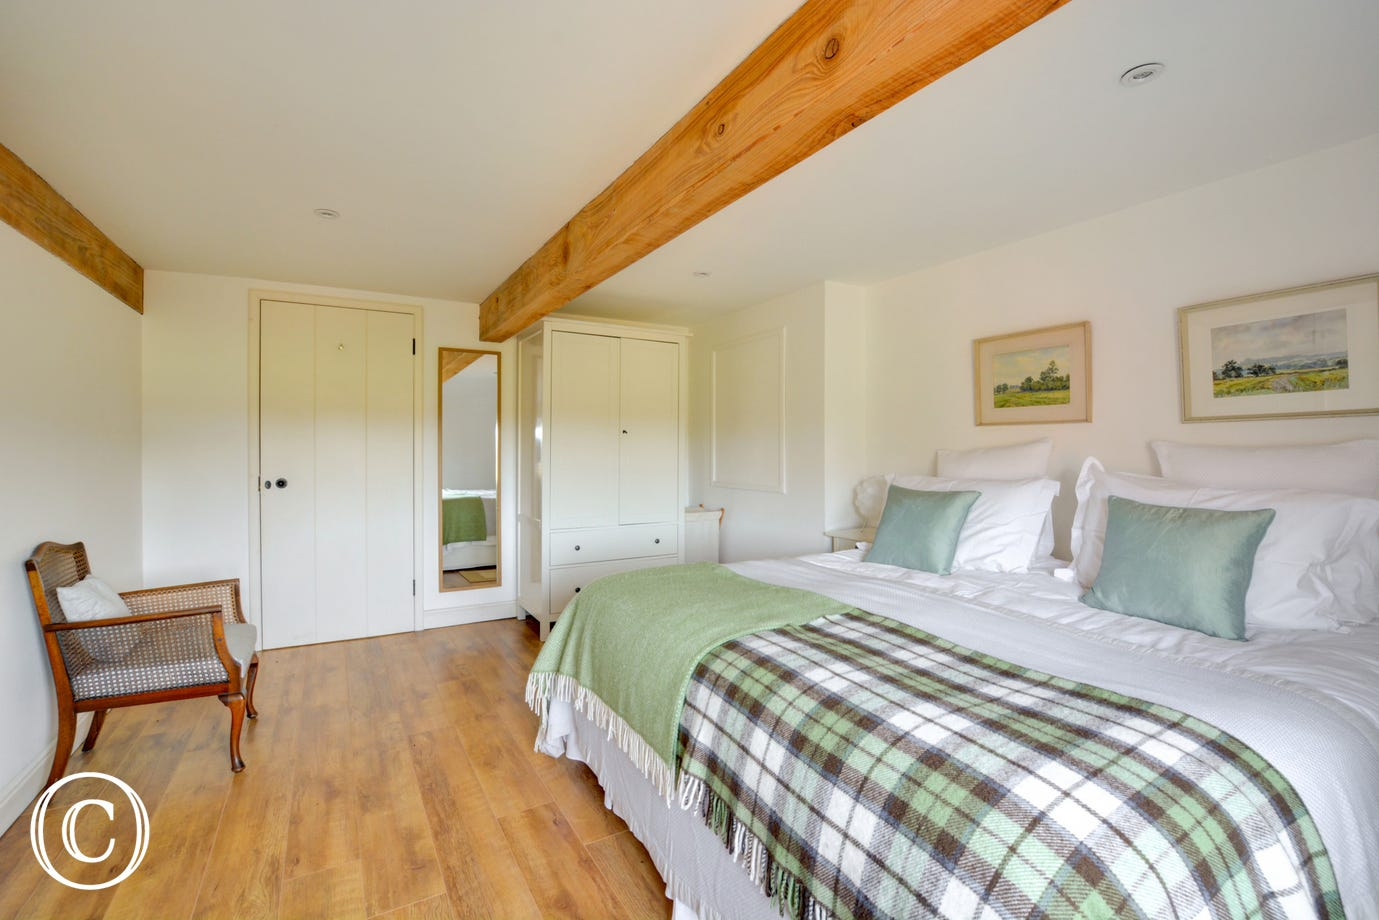 With the luxury of an en-suite, a bright and airy bedroom.